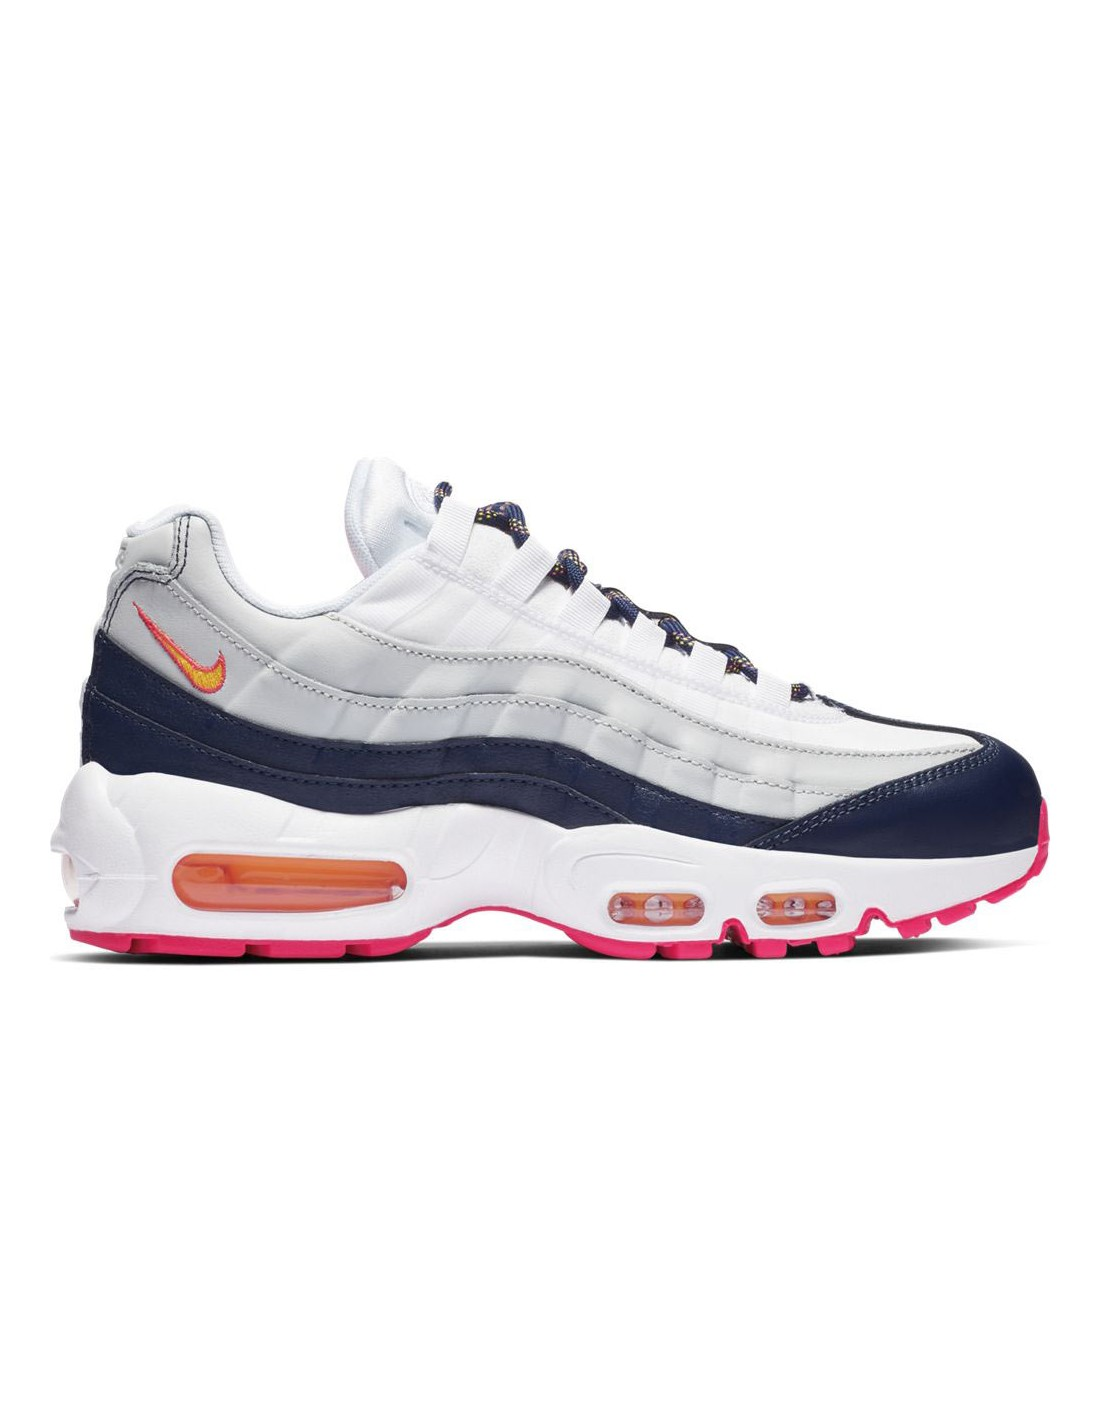 Sneakers Women's nike air max 95 shoe 307960 405 pour Enfants | NIKE